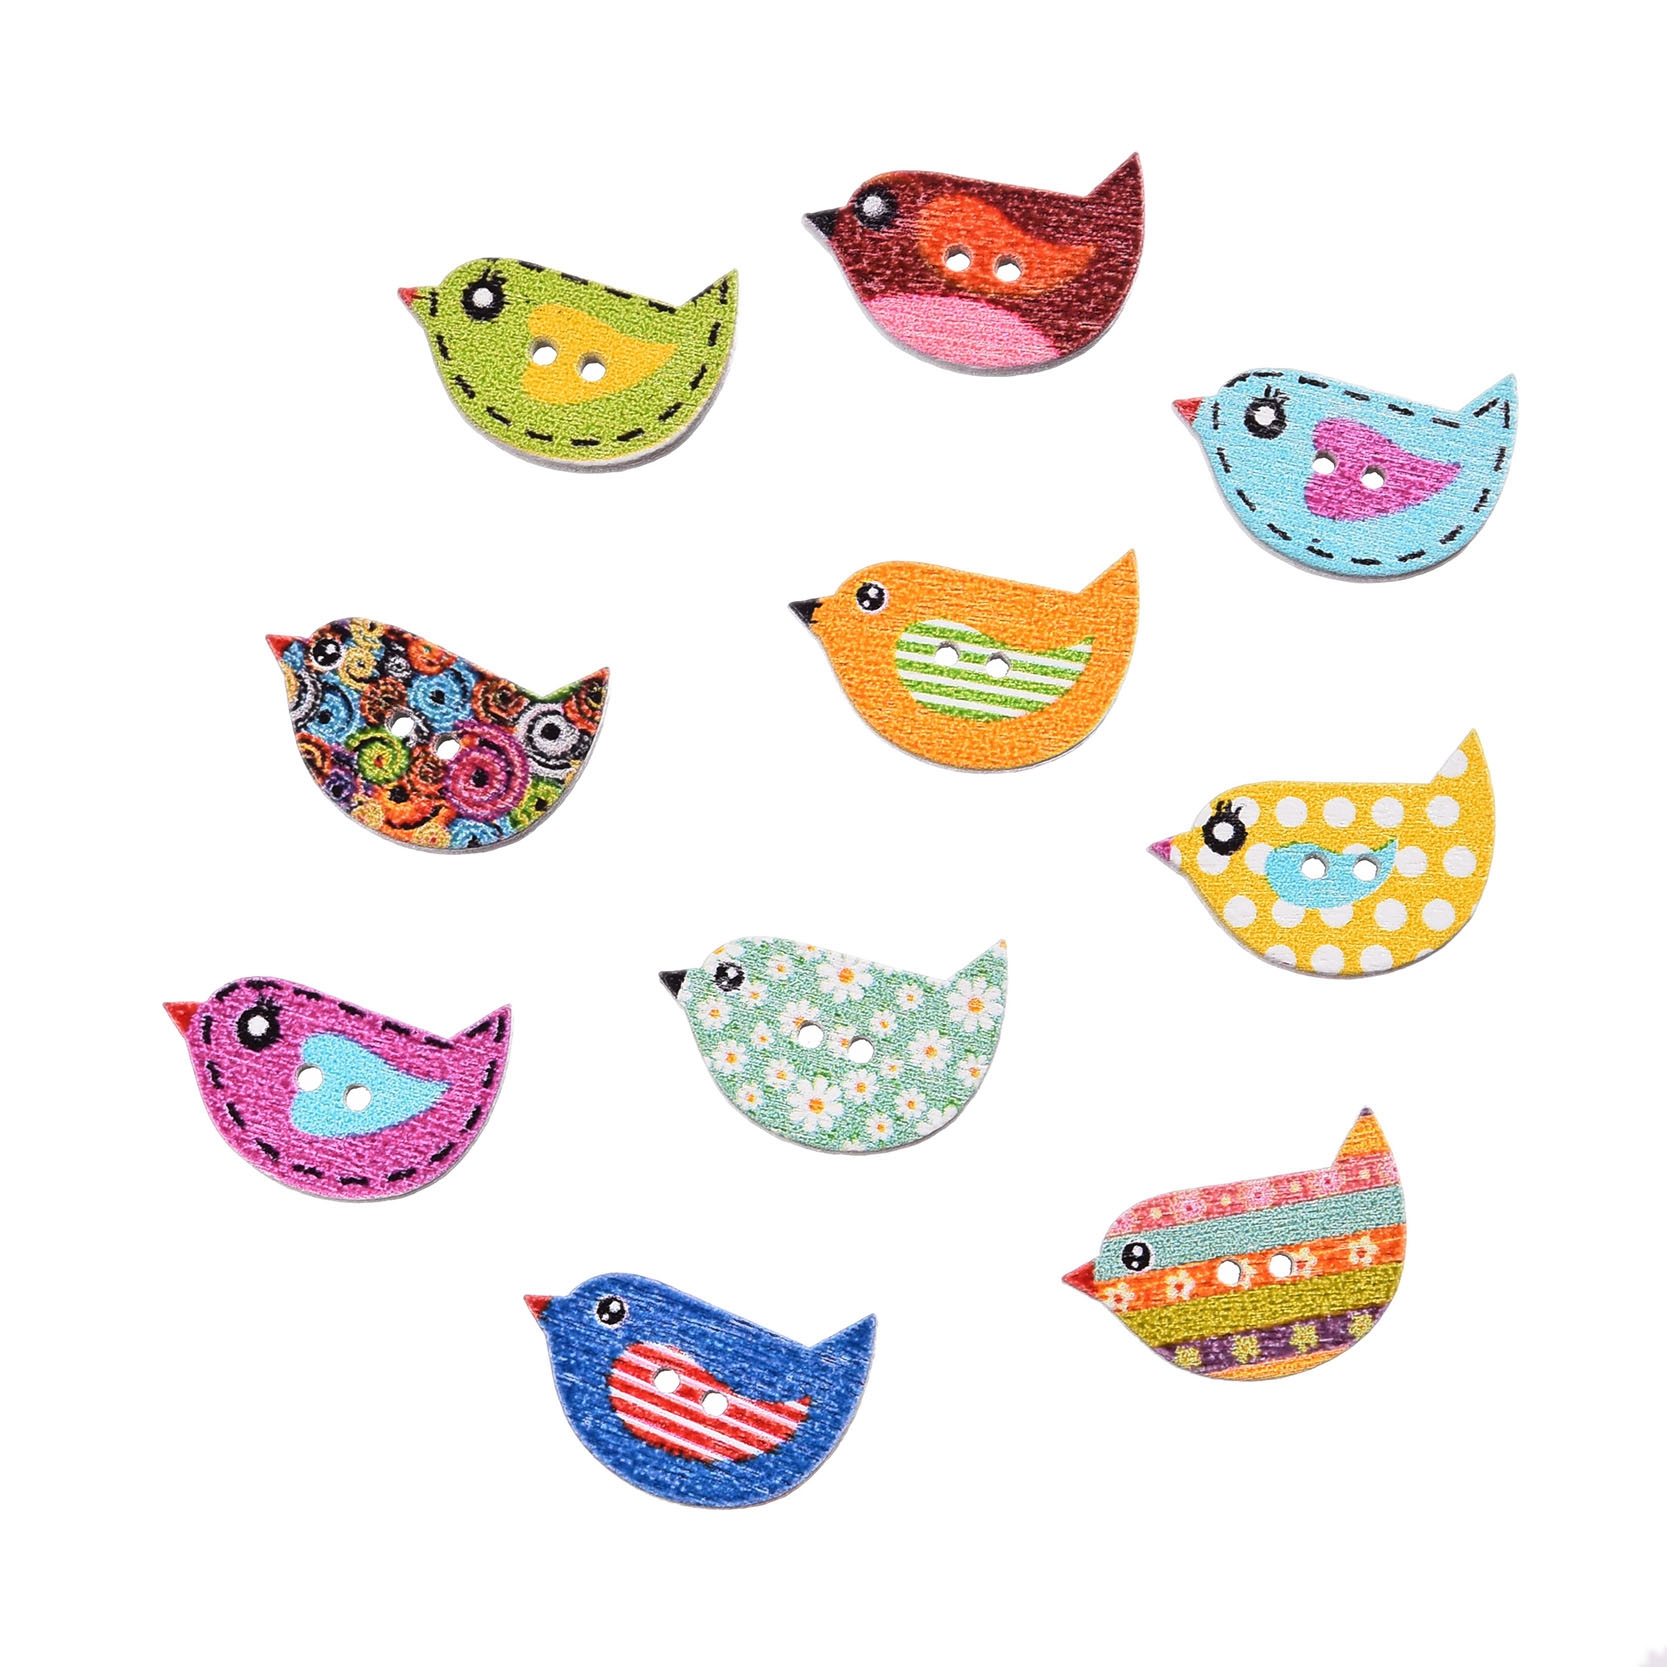 50Pcs Mixed Color Multicolor Cute Birds Botones 2 Holes Printing Wooden Buttons Scrapbooking Sewing Accessories Knopf 22*16mm(China (Mainland))